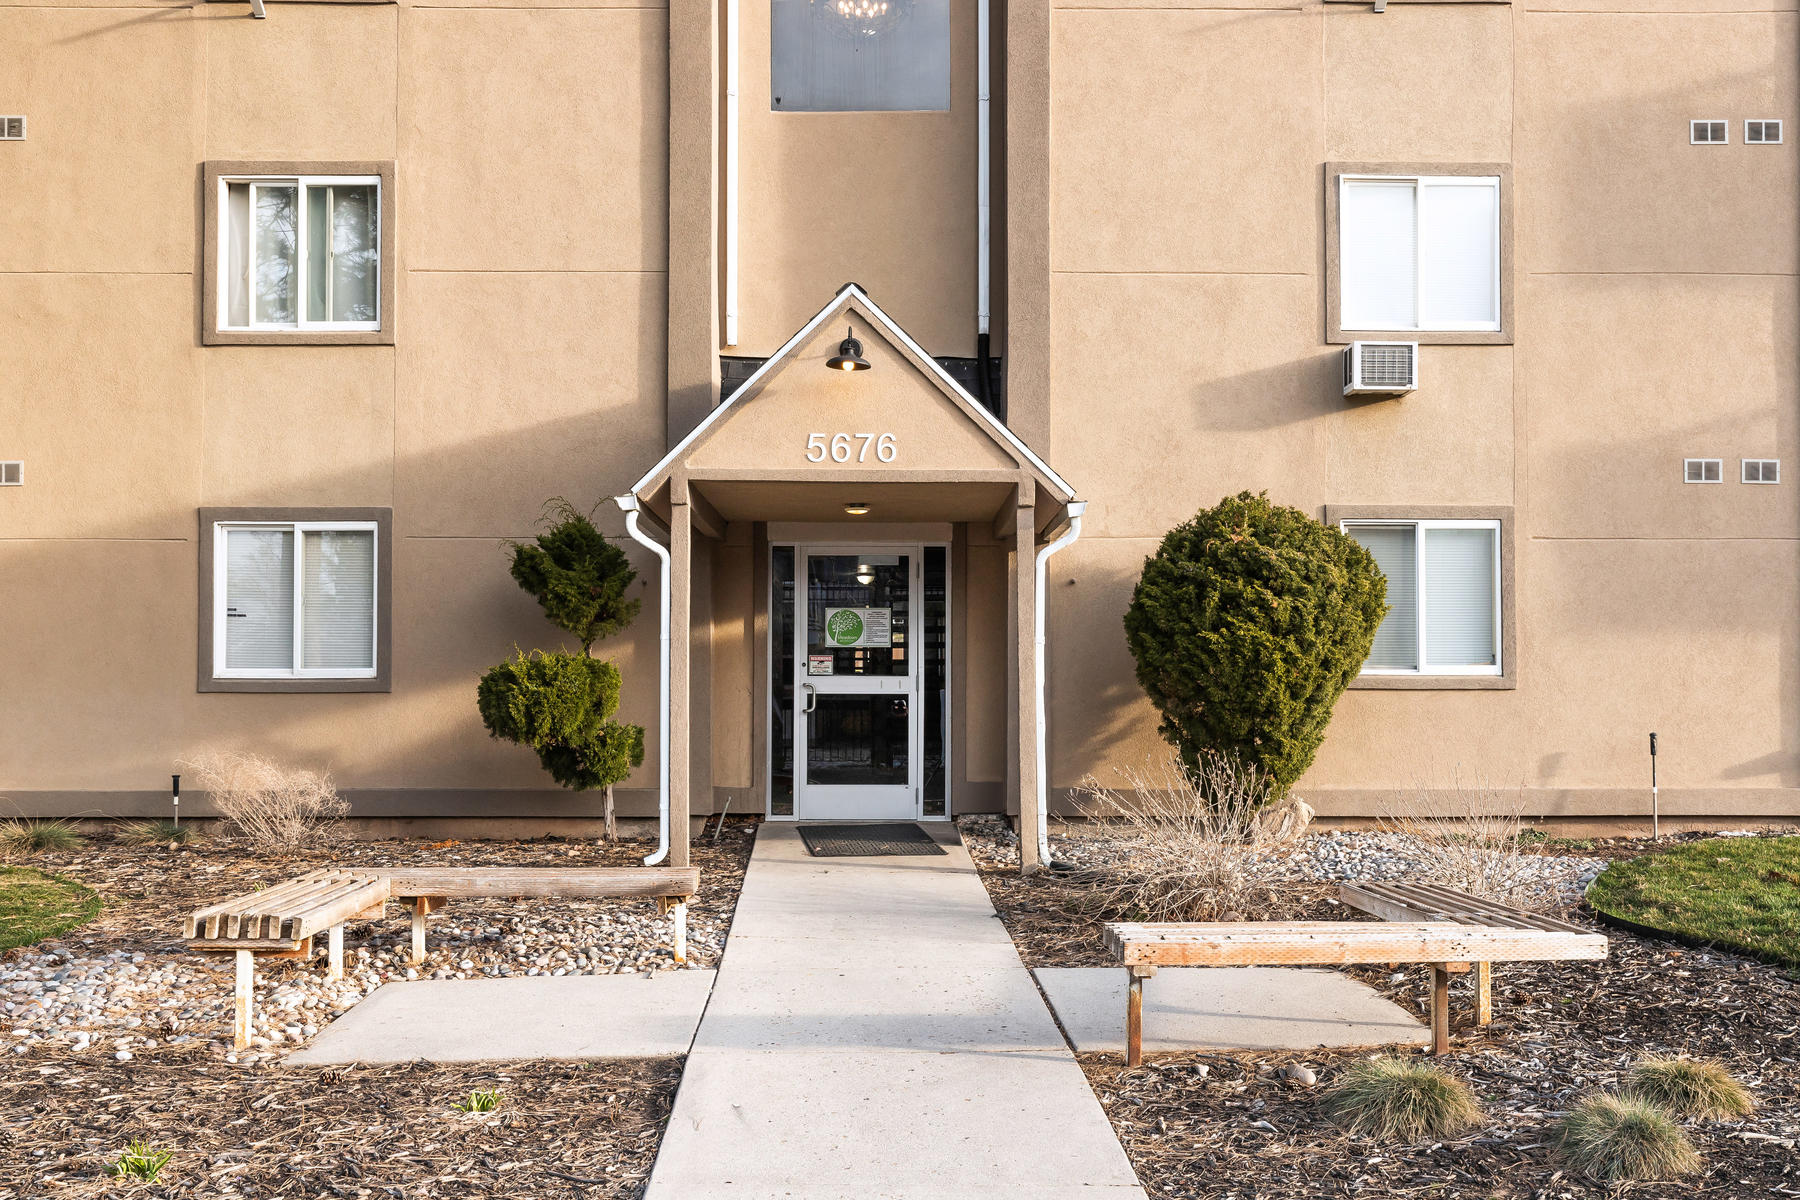 Condominiums 용 매매 에 Updated Condo in South Ogden 5676 S Meadow Lane #106 South Ogden, 유타 84403 미국